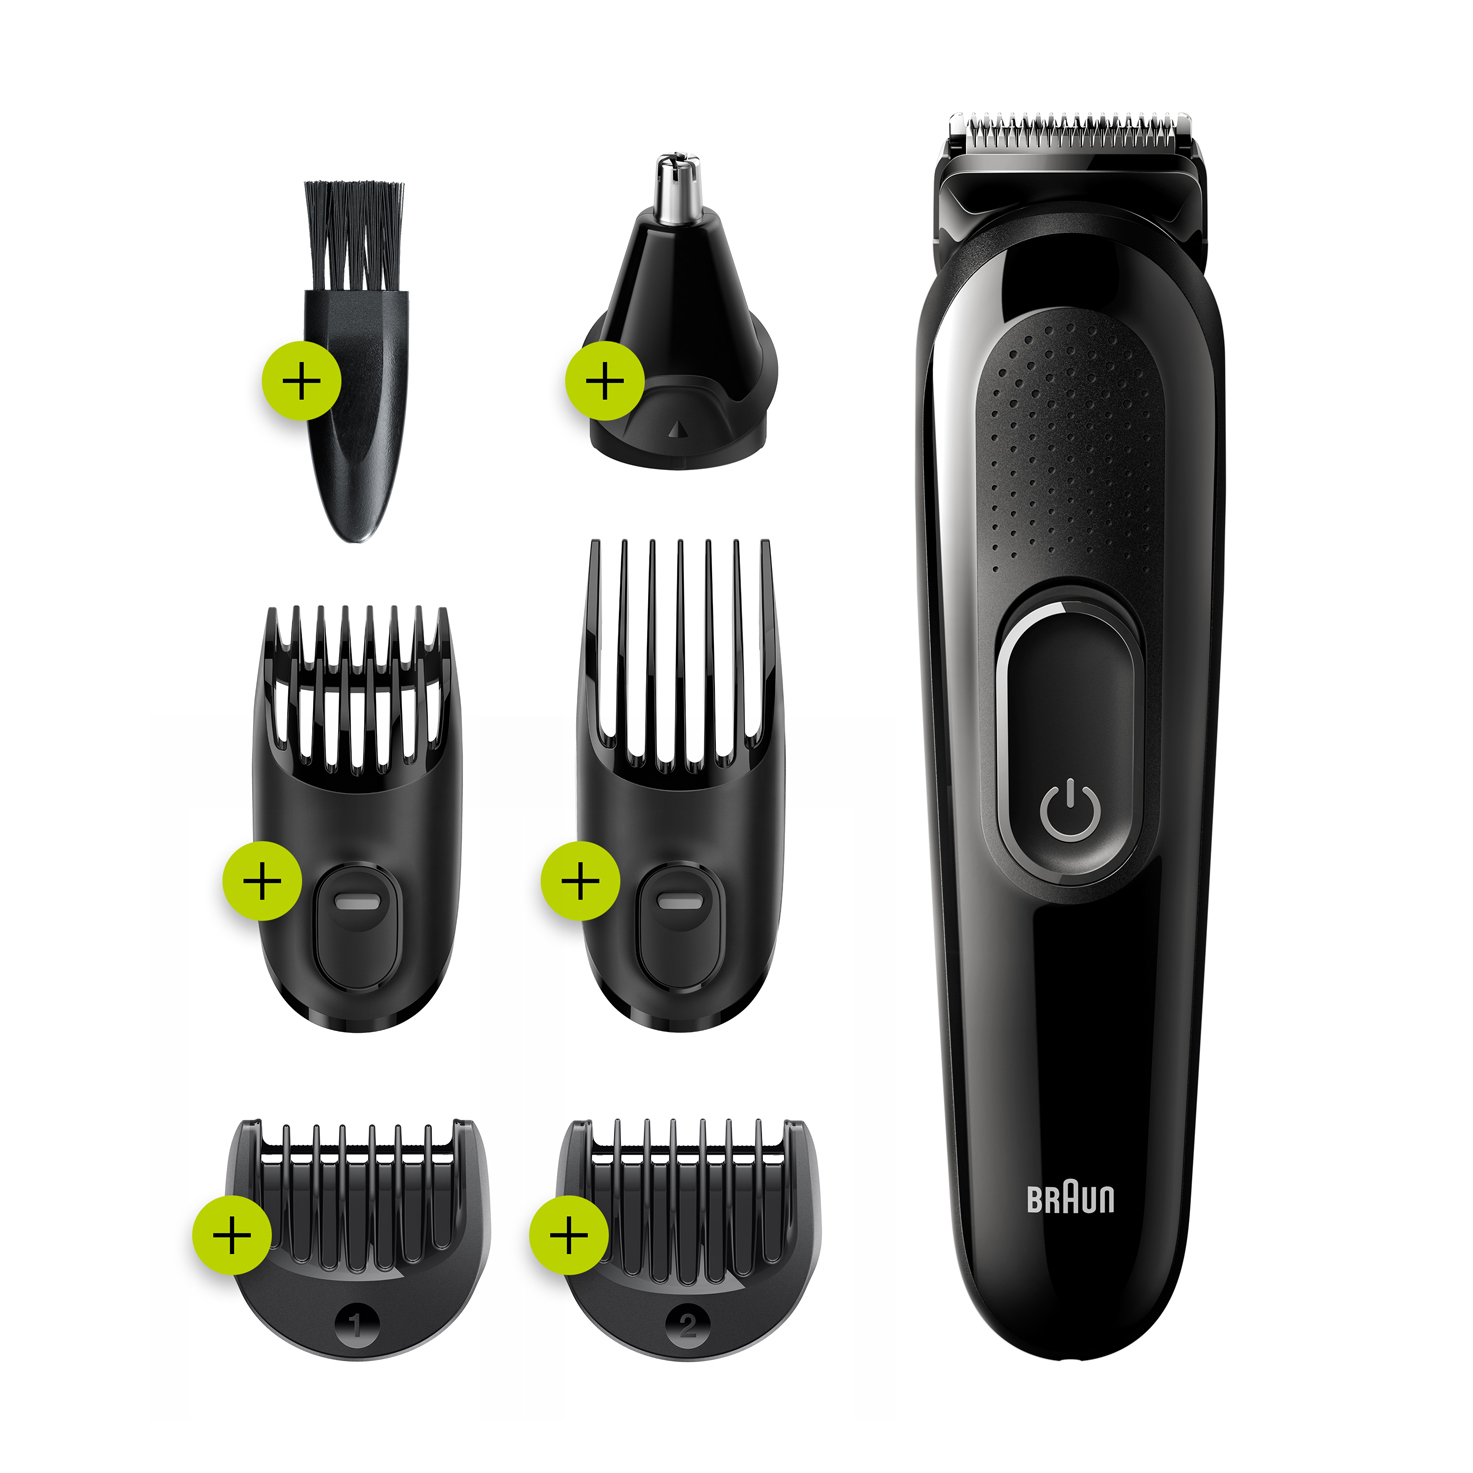 Braun All in one trimmer 3 MGK3220